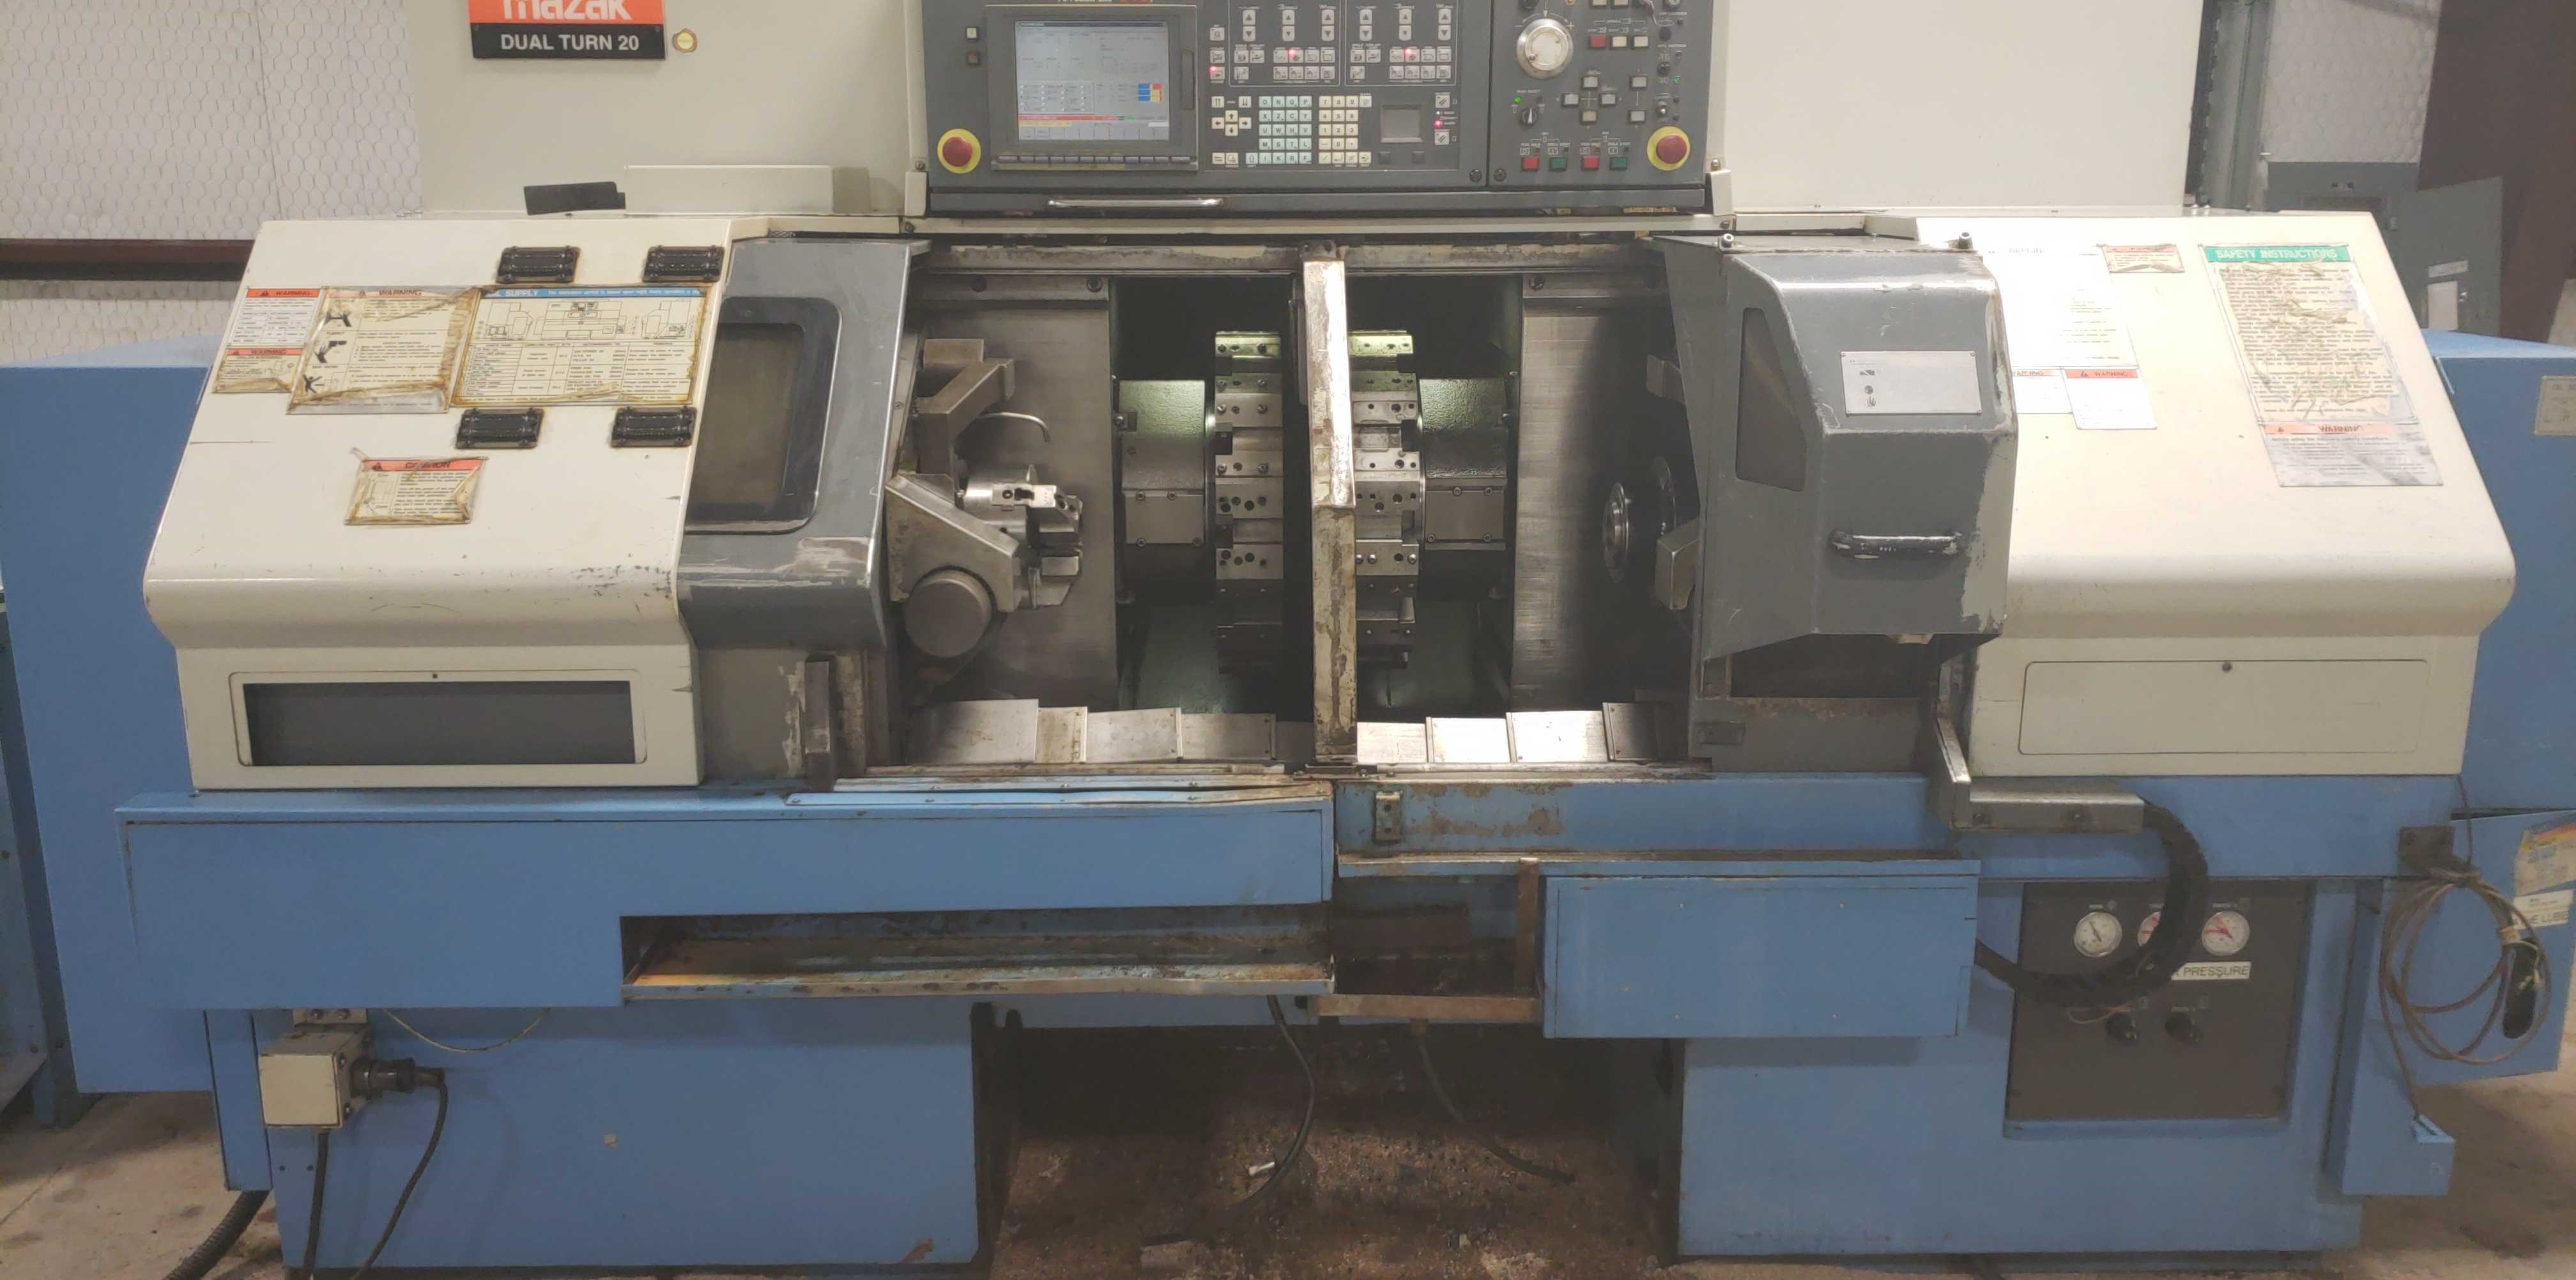 2004 Mazak Dual Turn 20 4 Axis Twin Spindle Twin Turret Opposed CNC Turning Center, rear discharge - Image 3 of 9